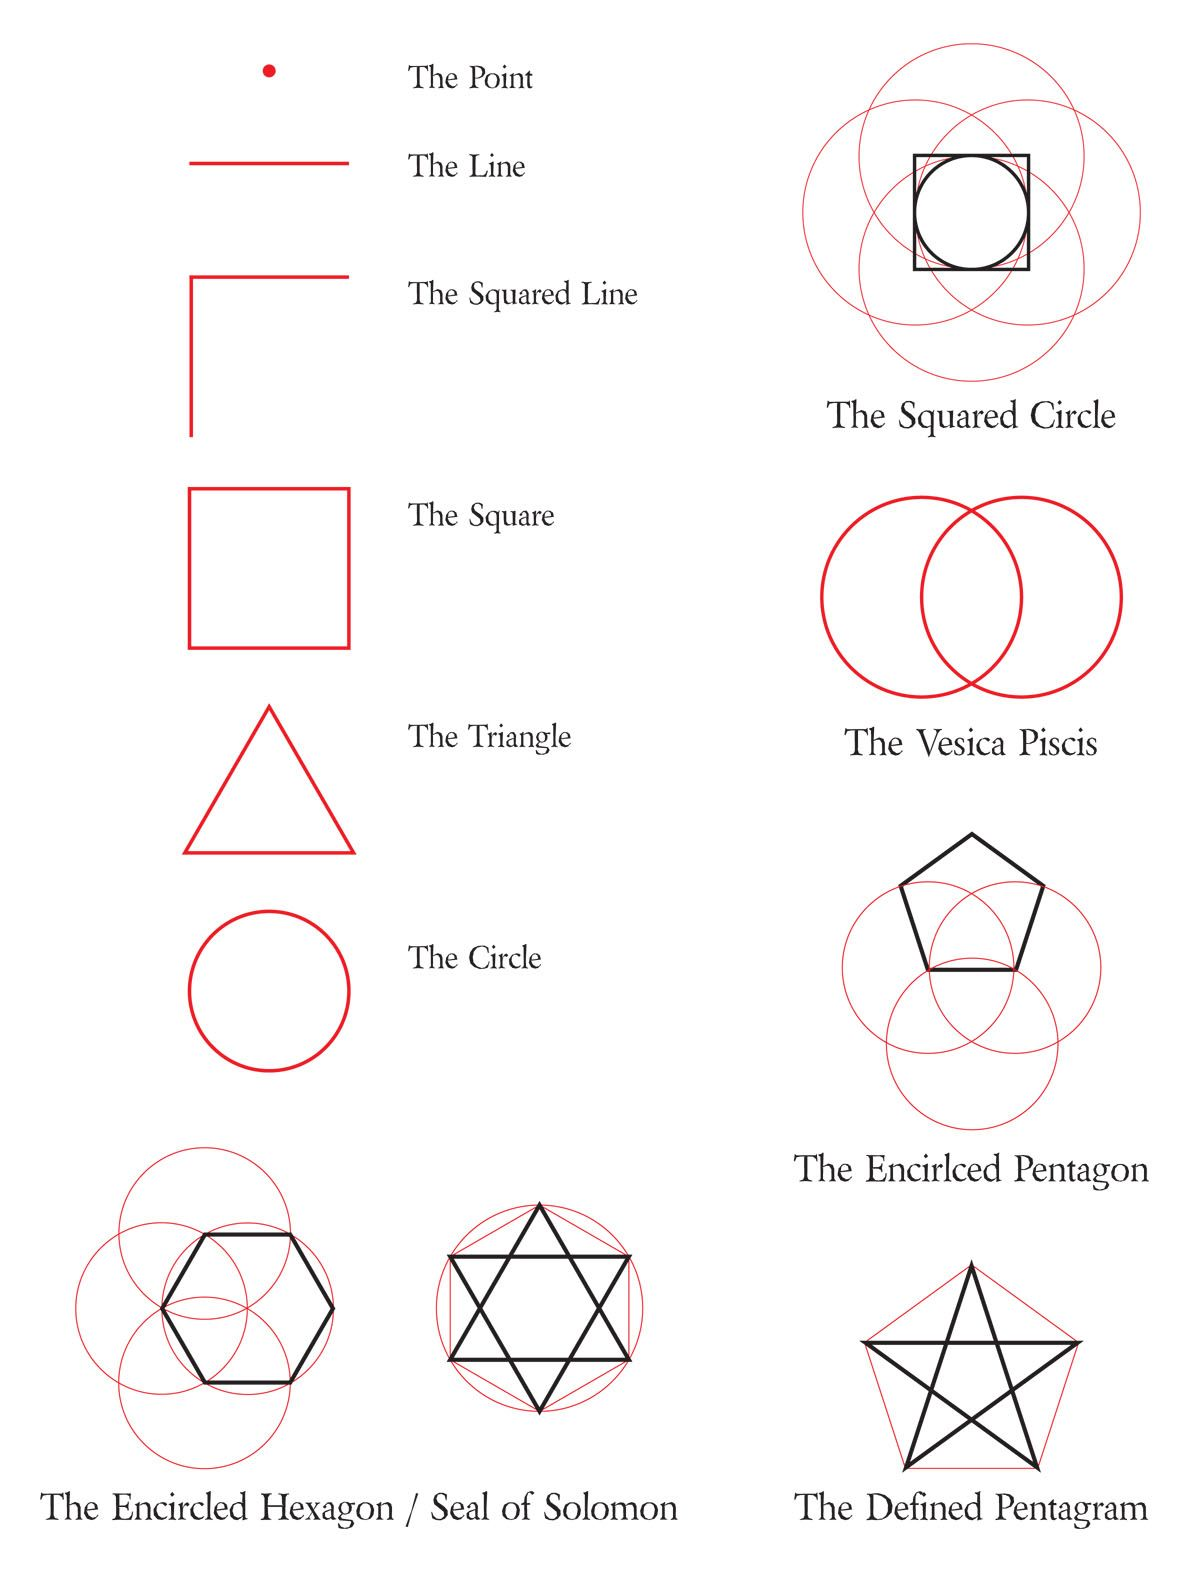 Meaning of alchemy symbols image collections symbol and sign ideas sacred geometry symbols and their meanings gallery symbol and sacred geometry drawing ideas rpg and drawings buycottarizona